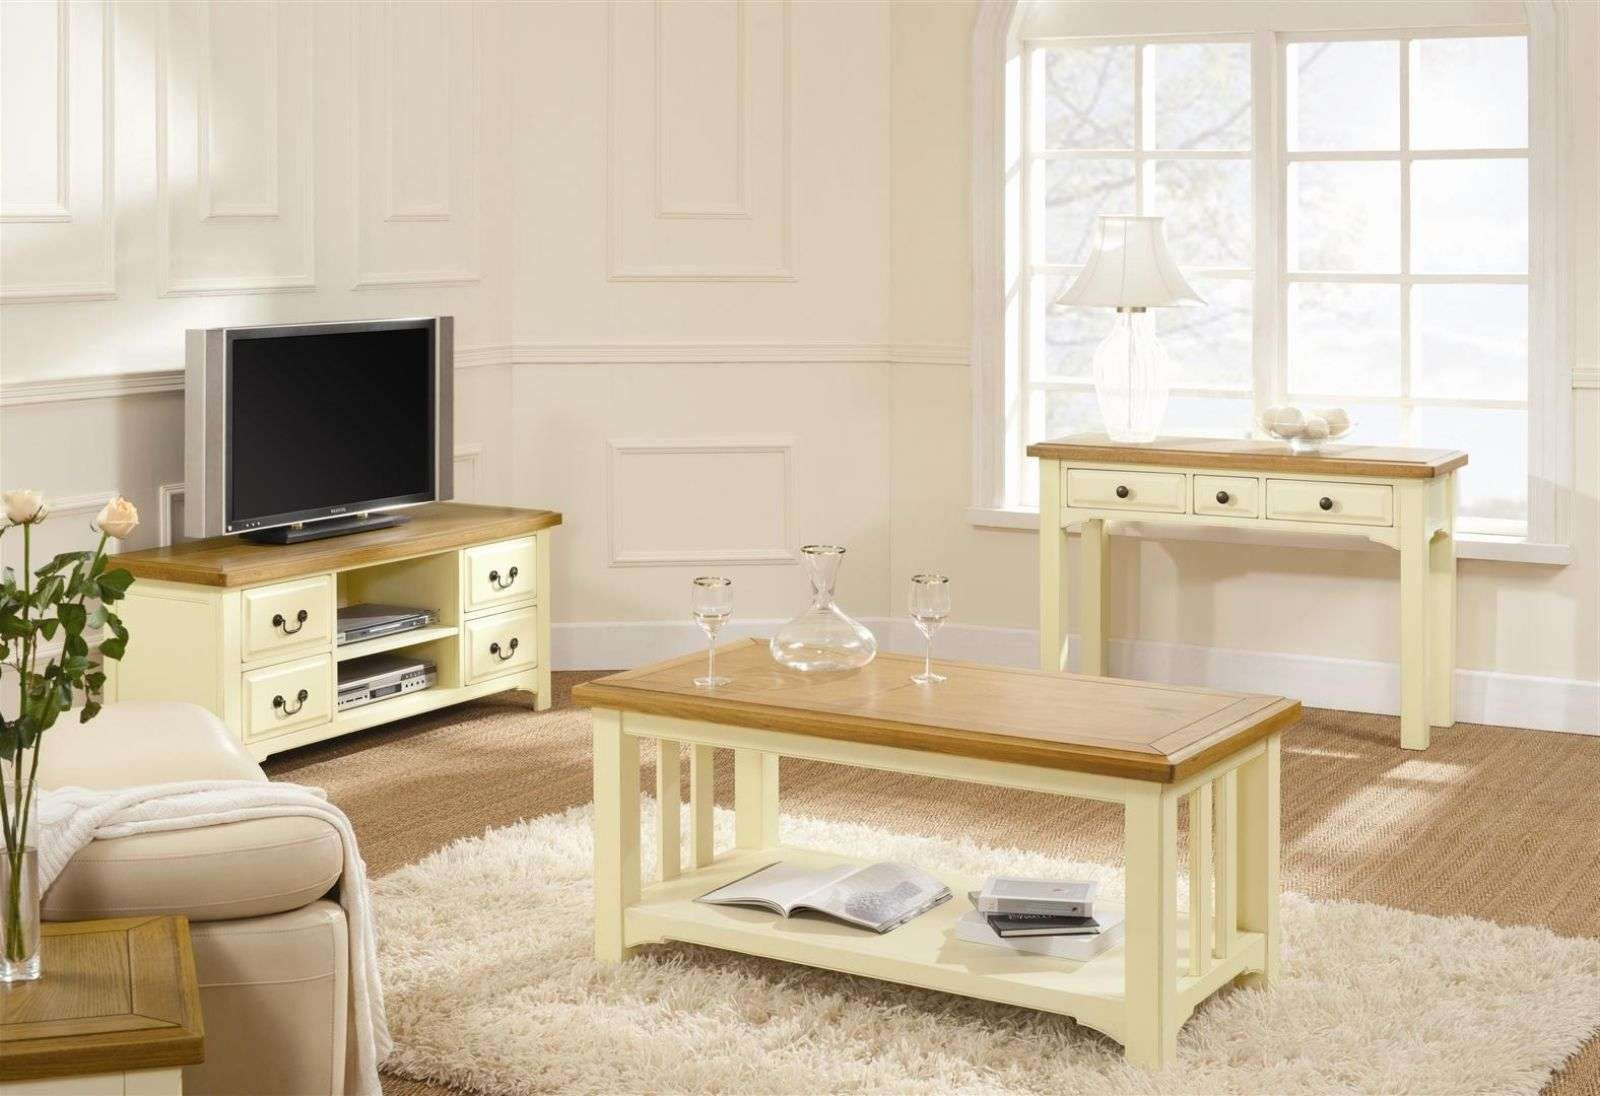 Sandringham Oak & Cream Coffee Table Cream Coffee Table With Glass Intended For Favorite Oak And Cream Coffee Tables (View 15 of 20)